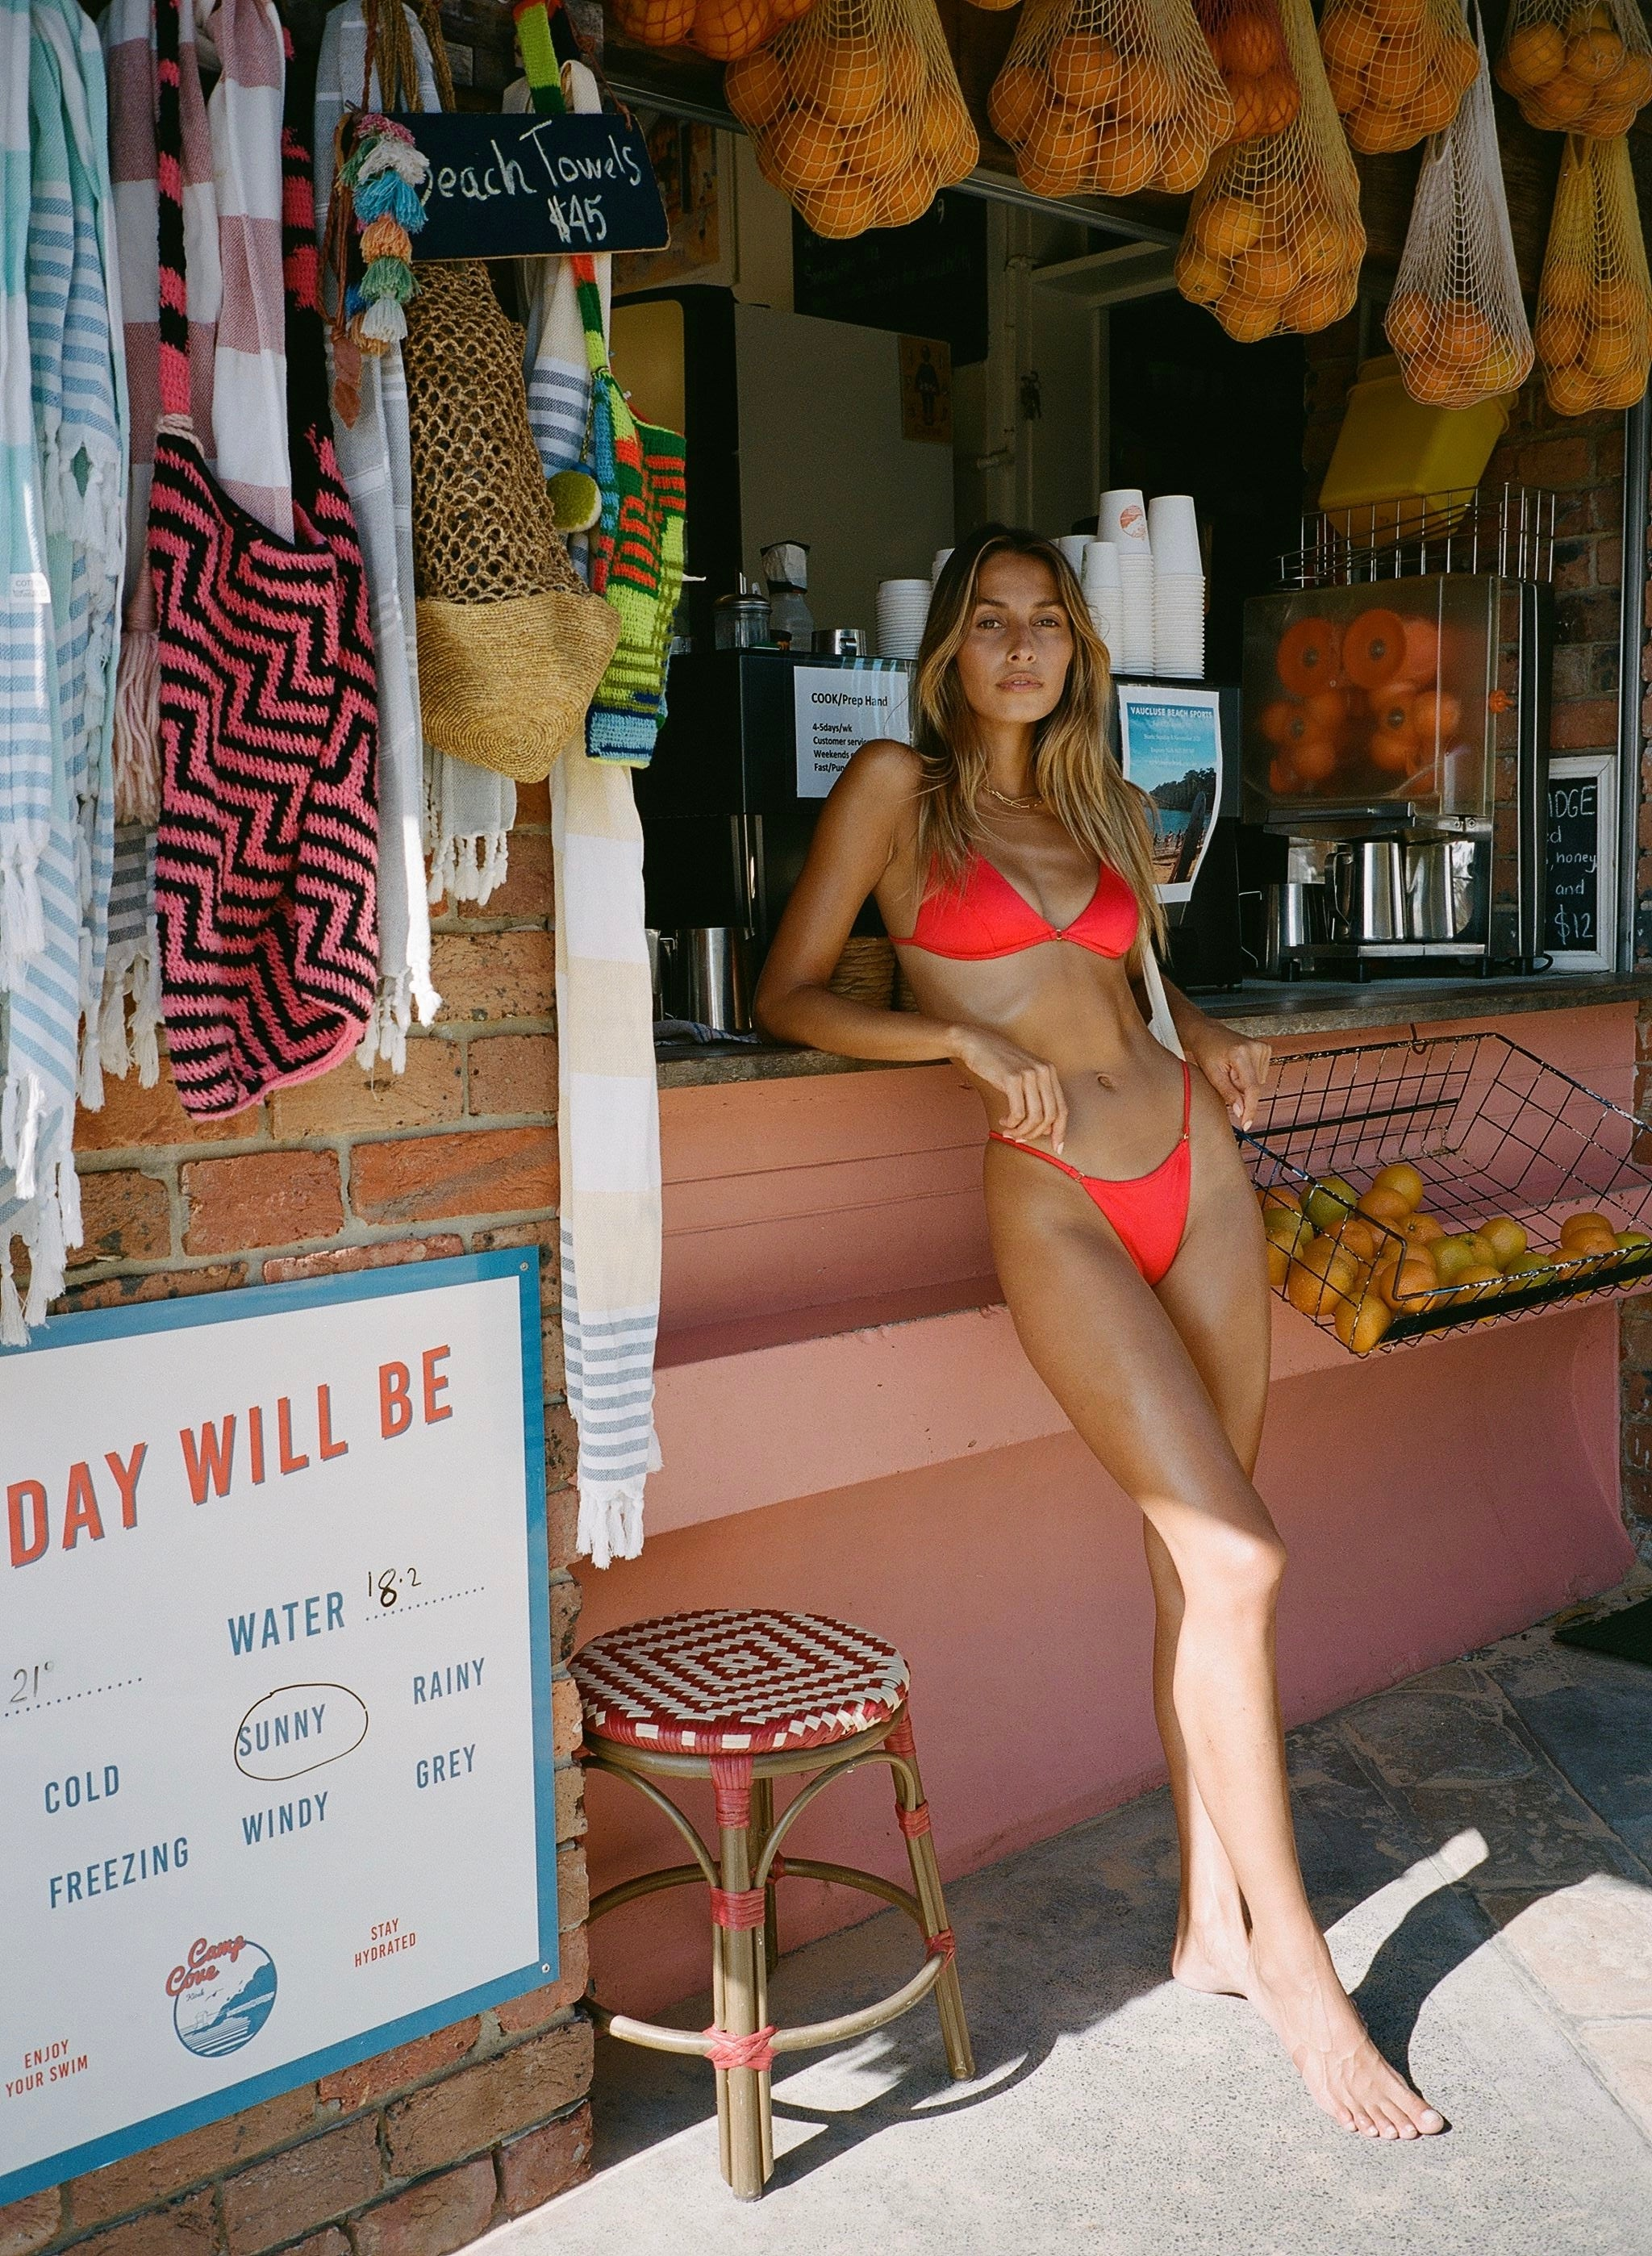 Model Dominique Elissa wearing the sommer swim red bralette bikini top and matching bottoms at camp cove in Sydney